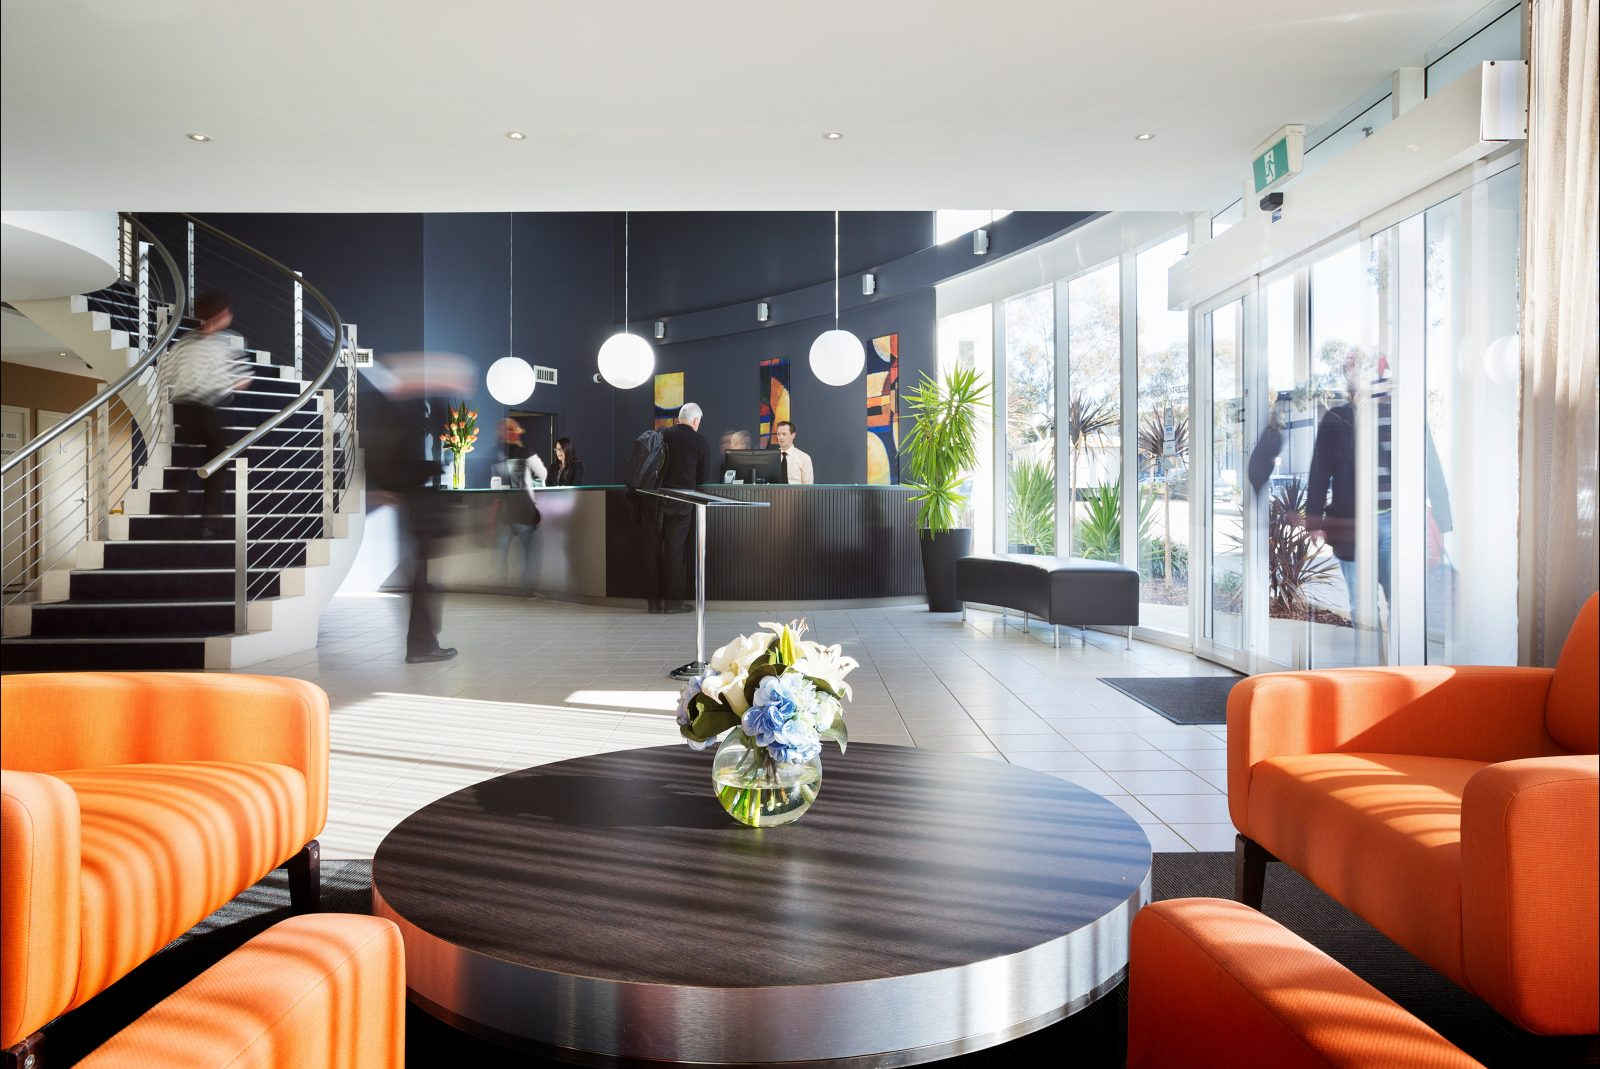 Interior of the Premier Hotel Reception